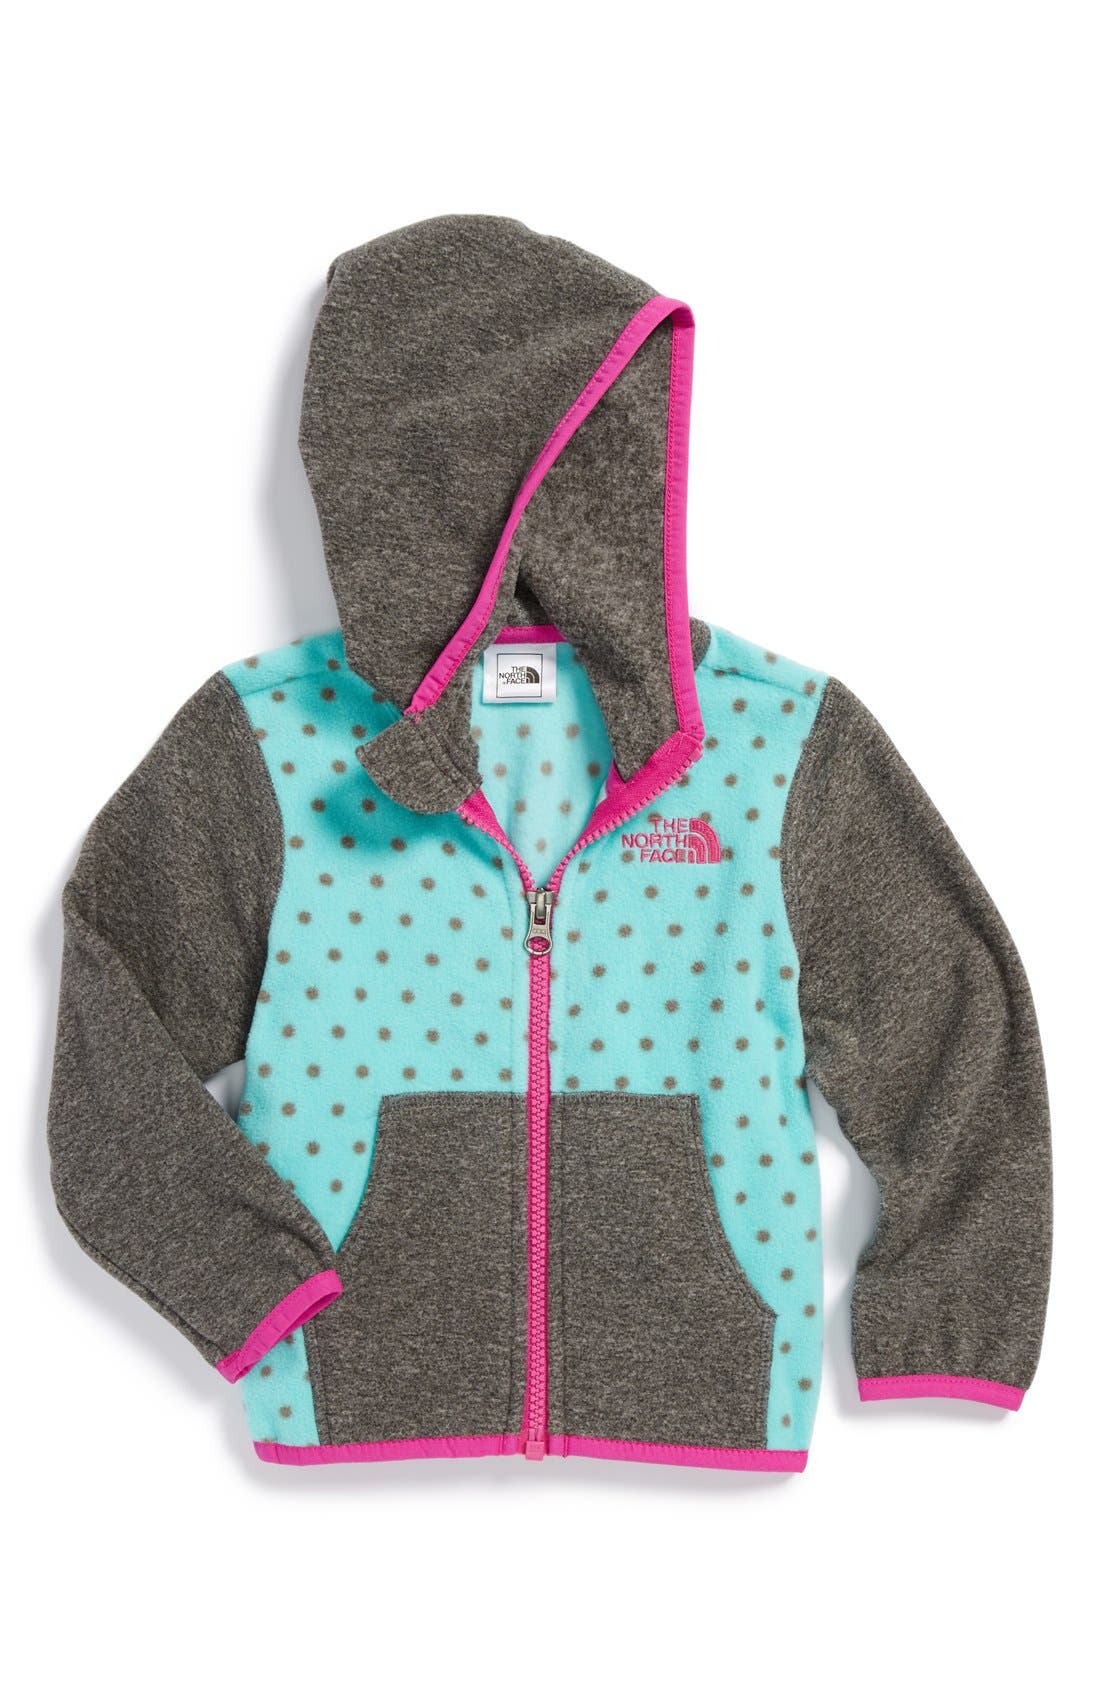 Main Image - The North Face 'Glacier' Full Zip Fleece Hoodie (Baby Girls)